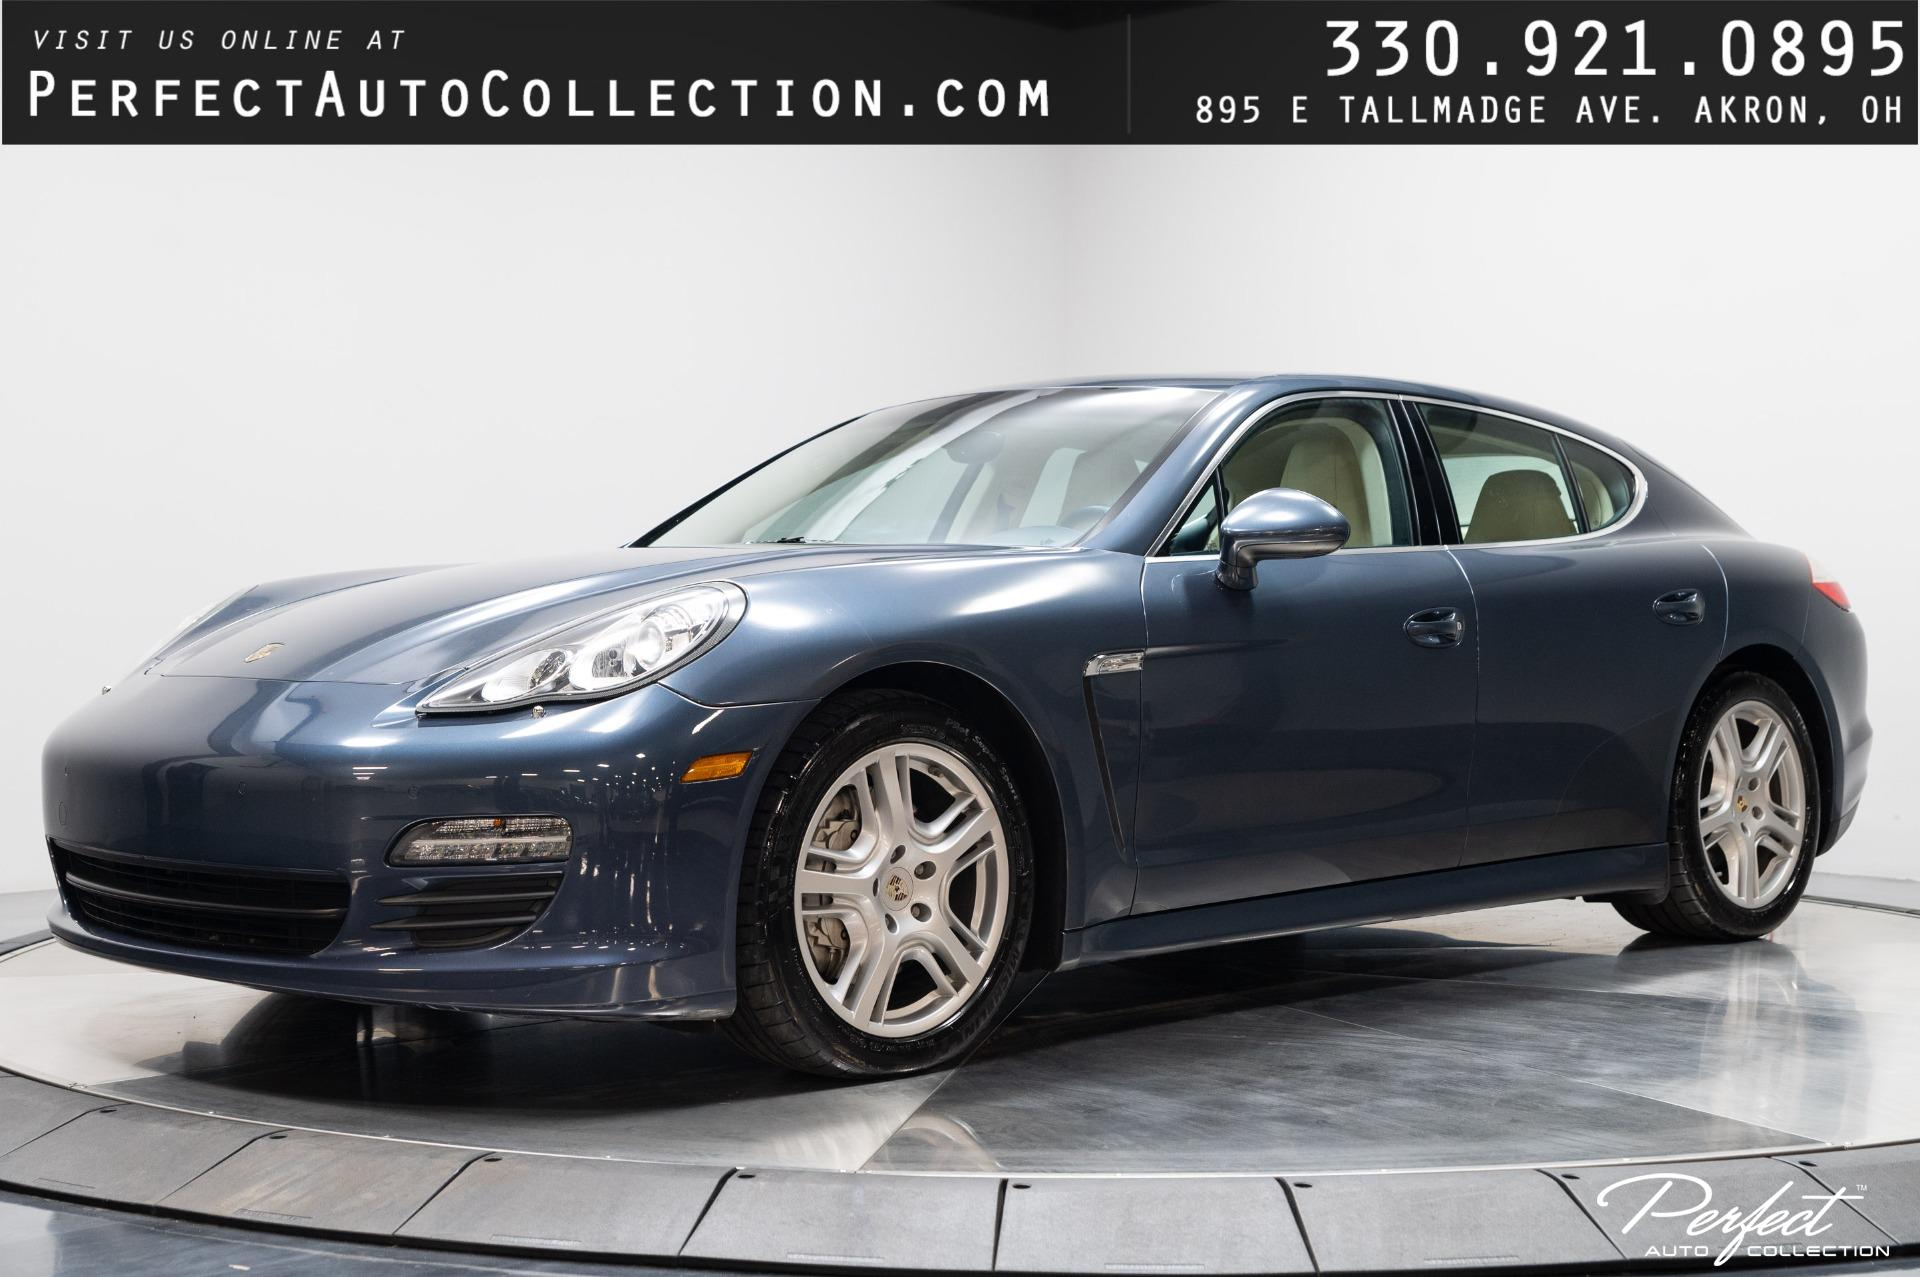 Used 2010 Porsche Panamera S for sale $30,995 at Perfect Auto Collection in Akron OH 44310 1